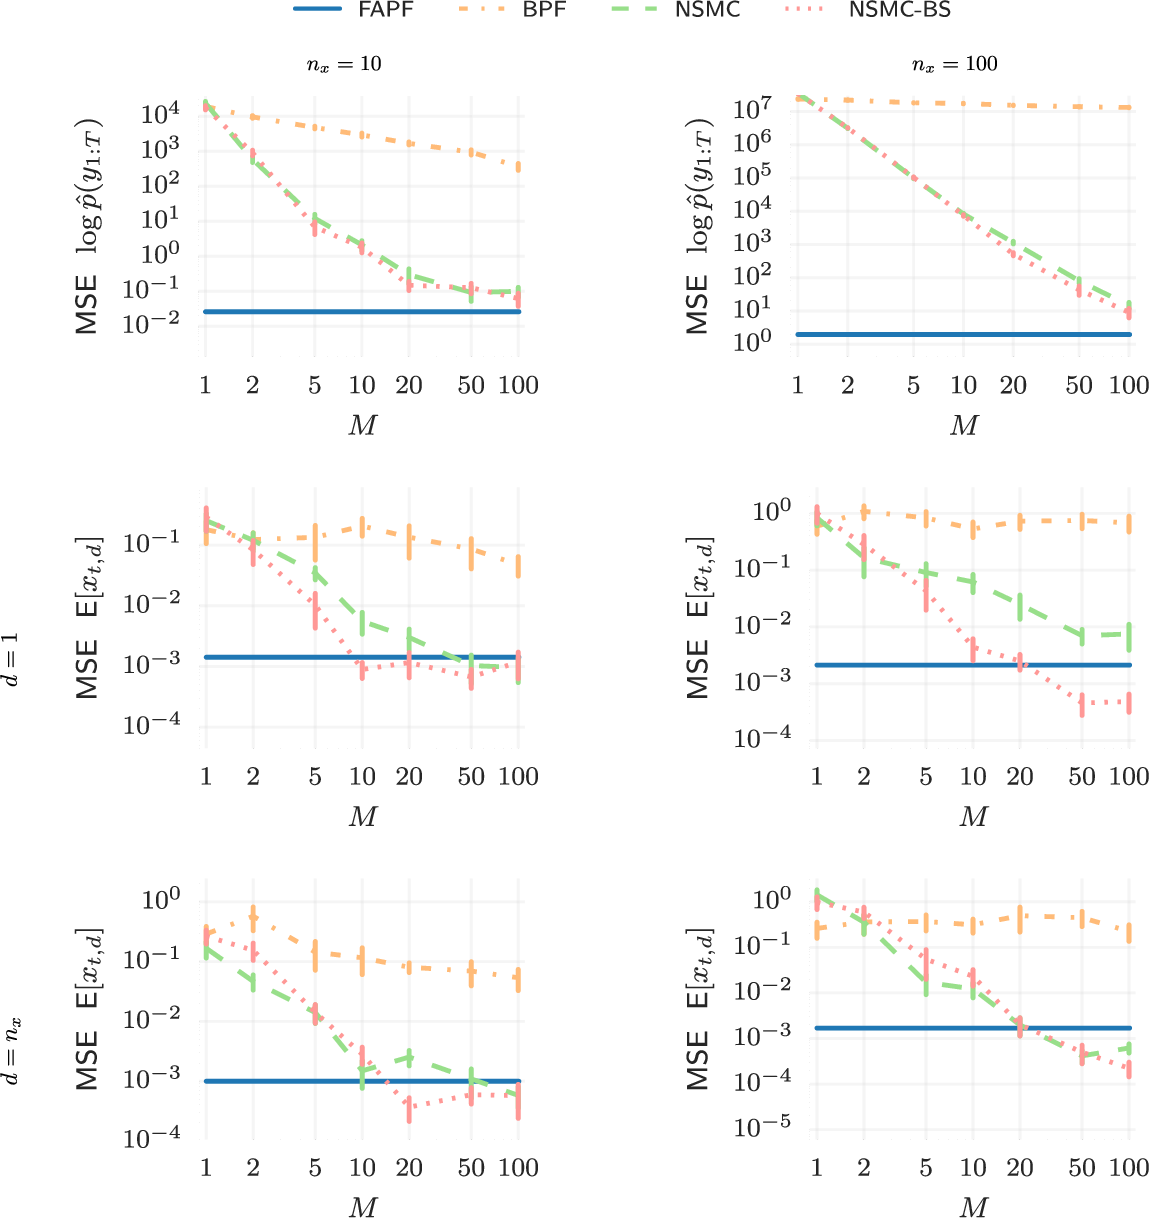 Figure 4 for High-dimensional Filtering using Nested Sequential Monte Carlo